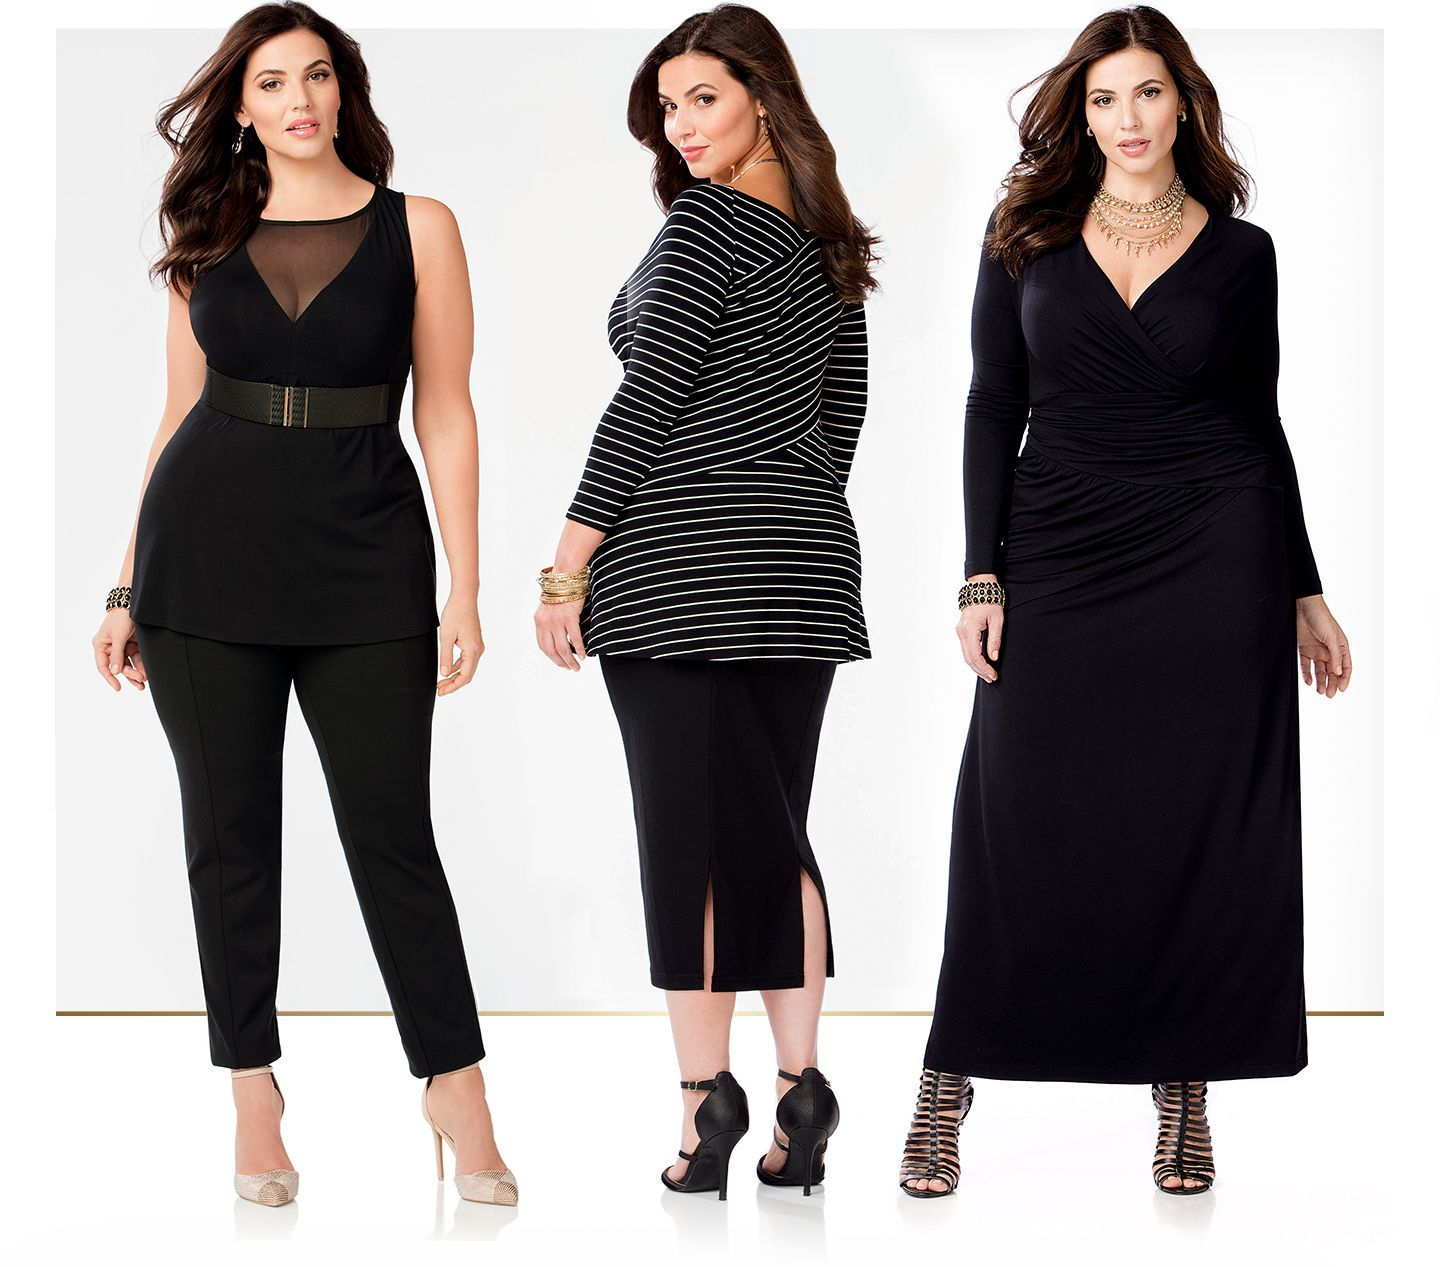 c3d5c814ae8 Curvy Collection - Extended Plus Size Clothing